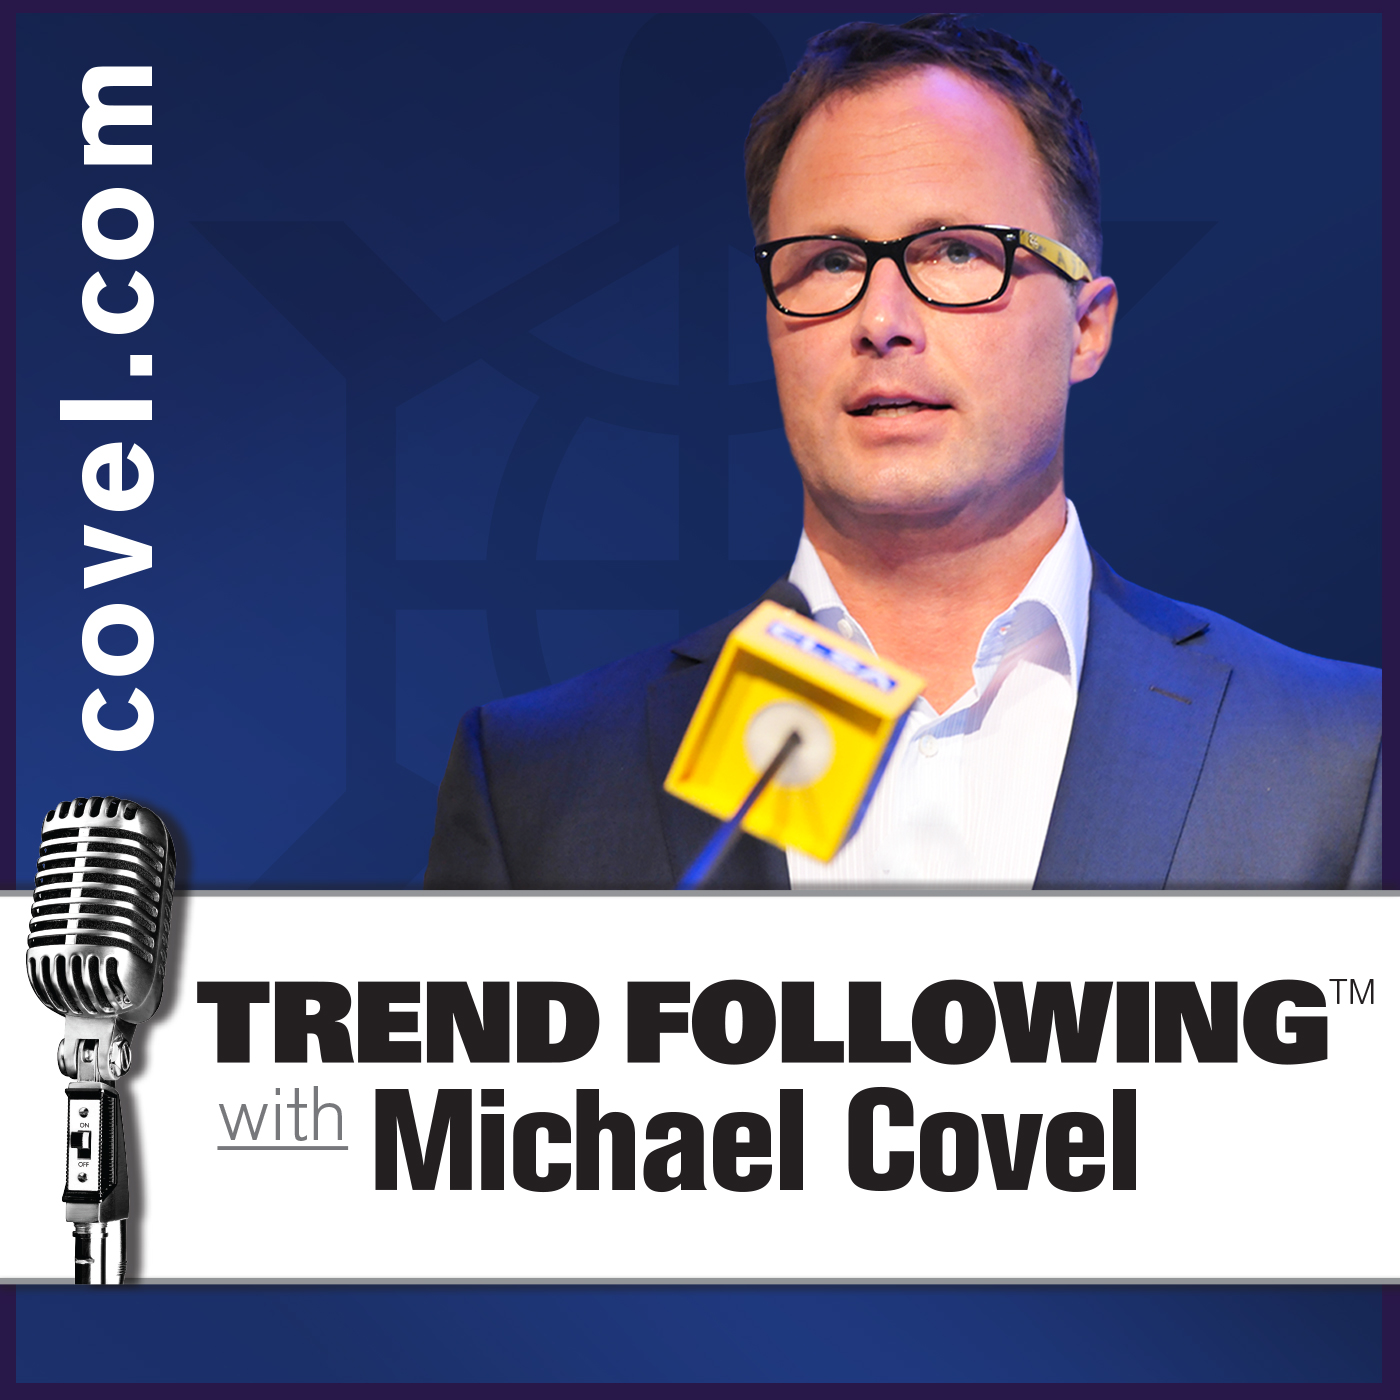 Ep. 518: Evan Carmichael Interview with Michael Covel on Trend Following Radio